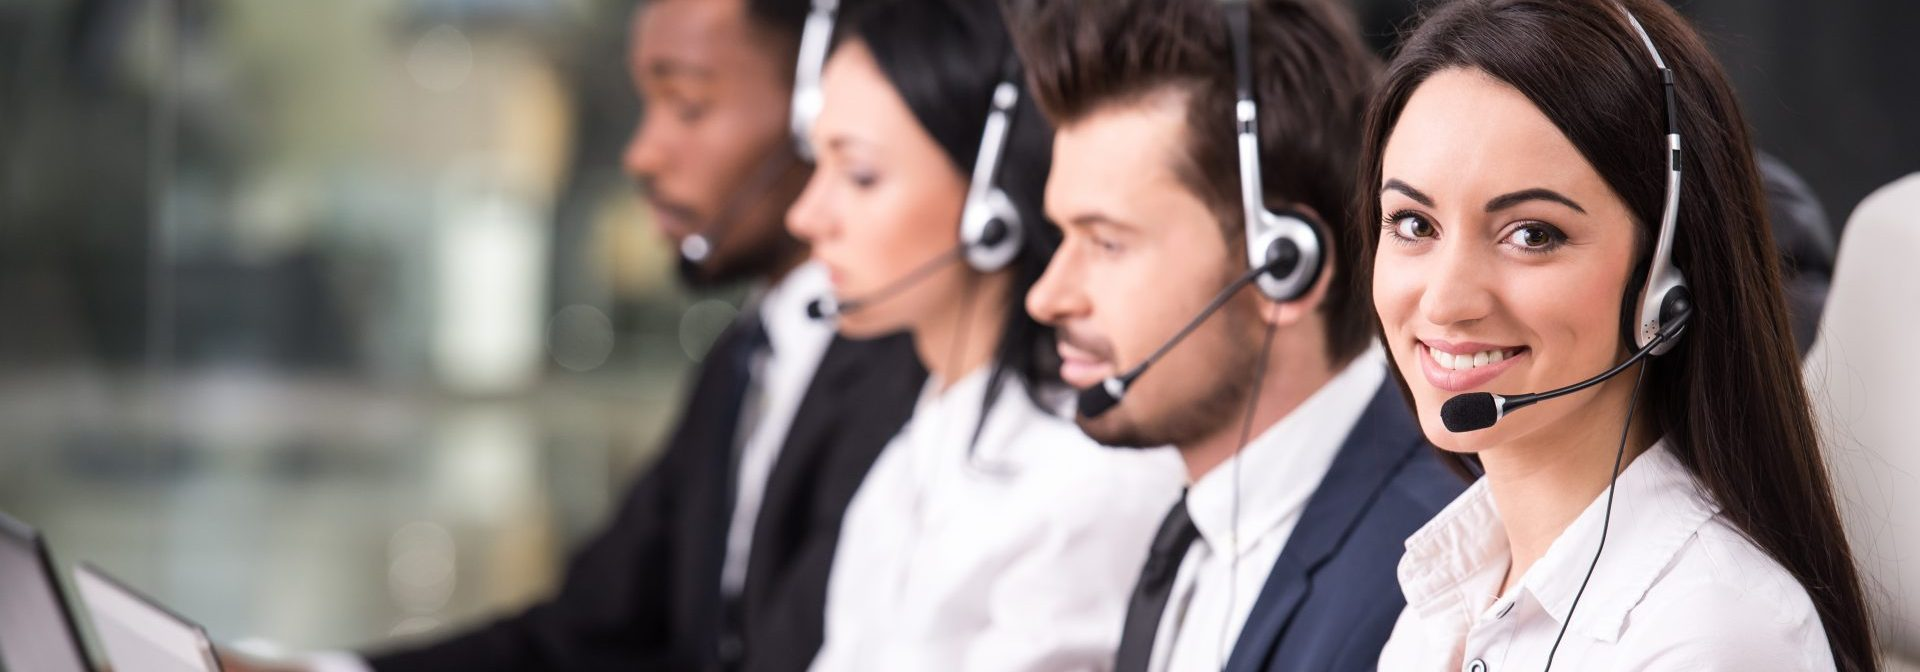 customer service apprenticeship training